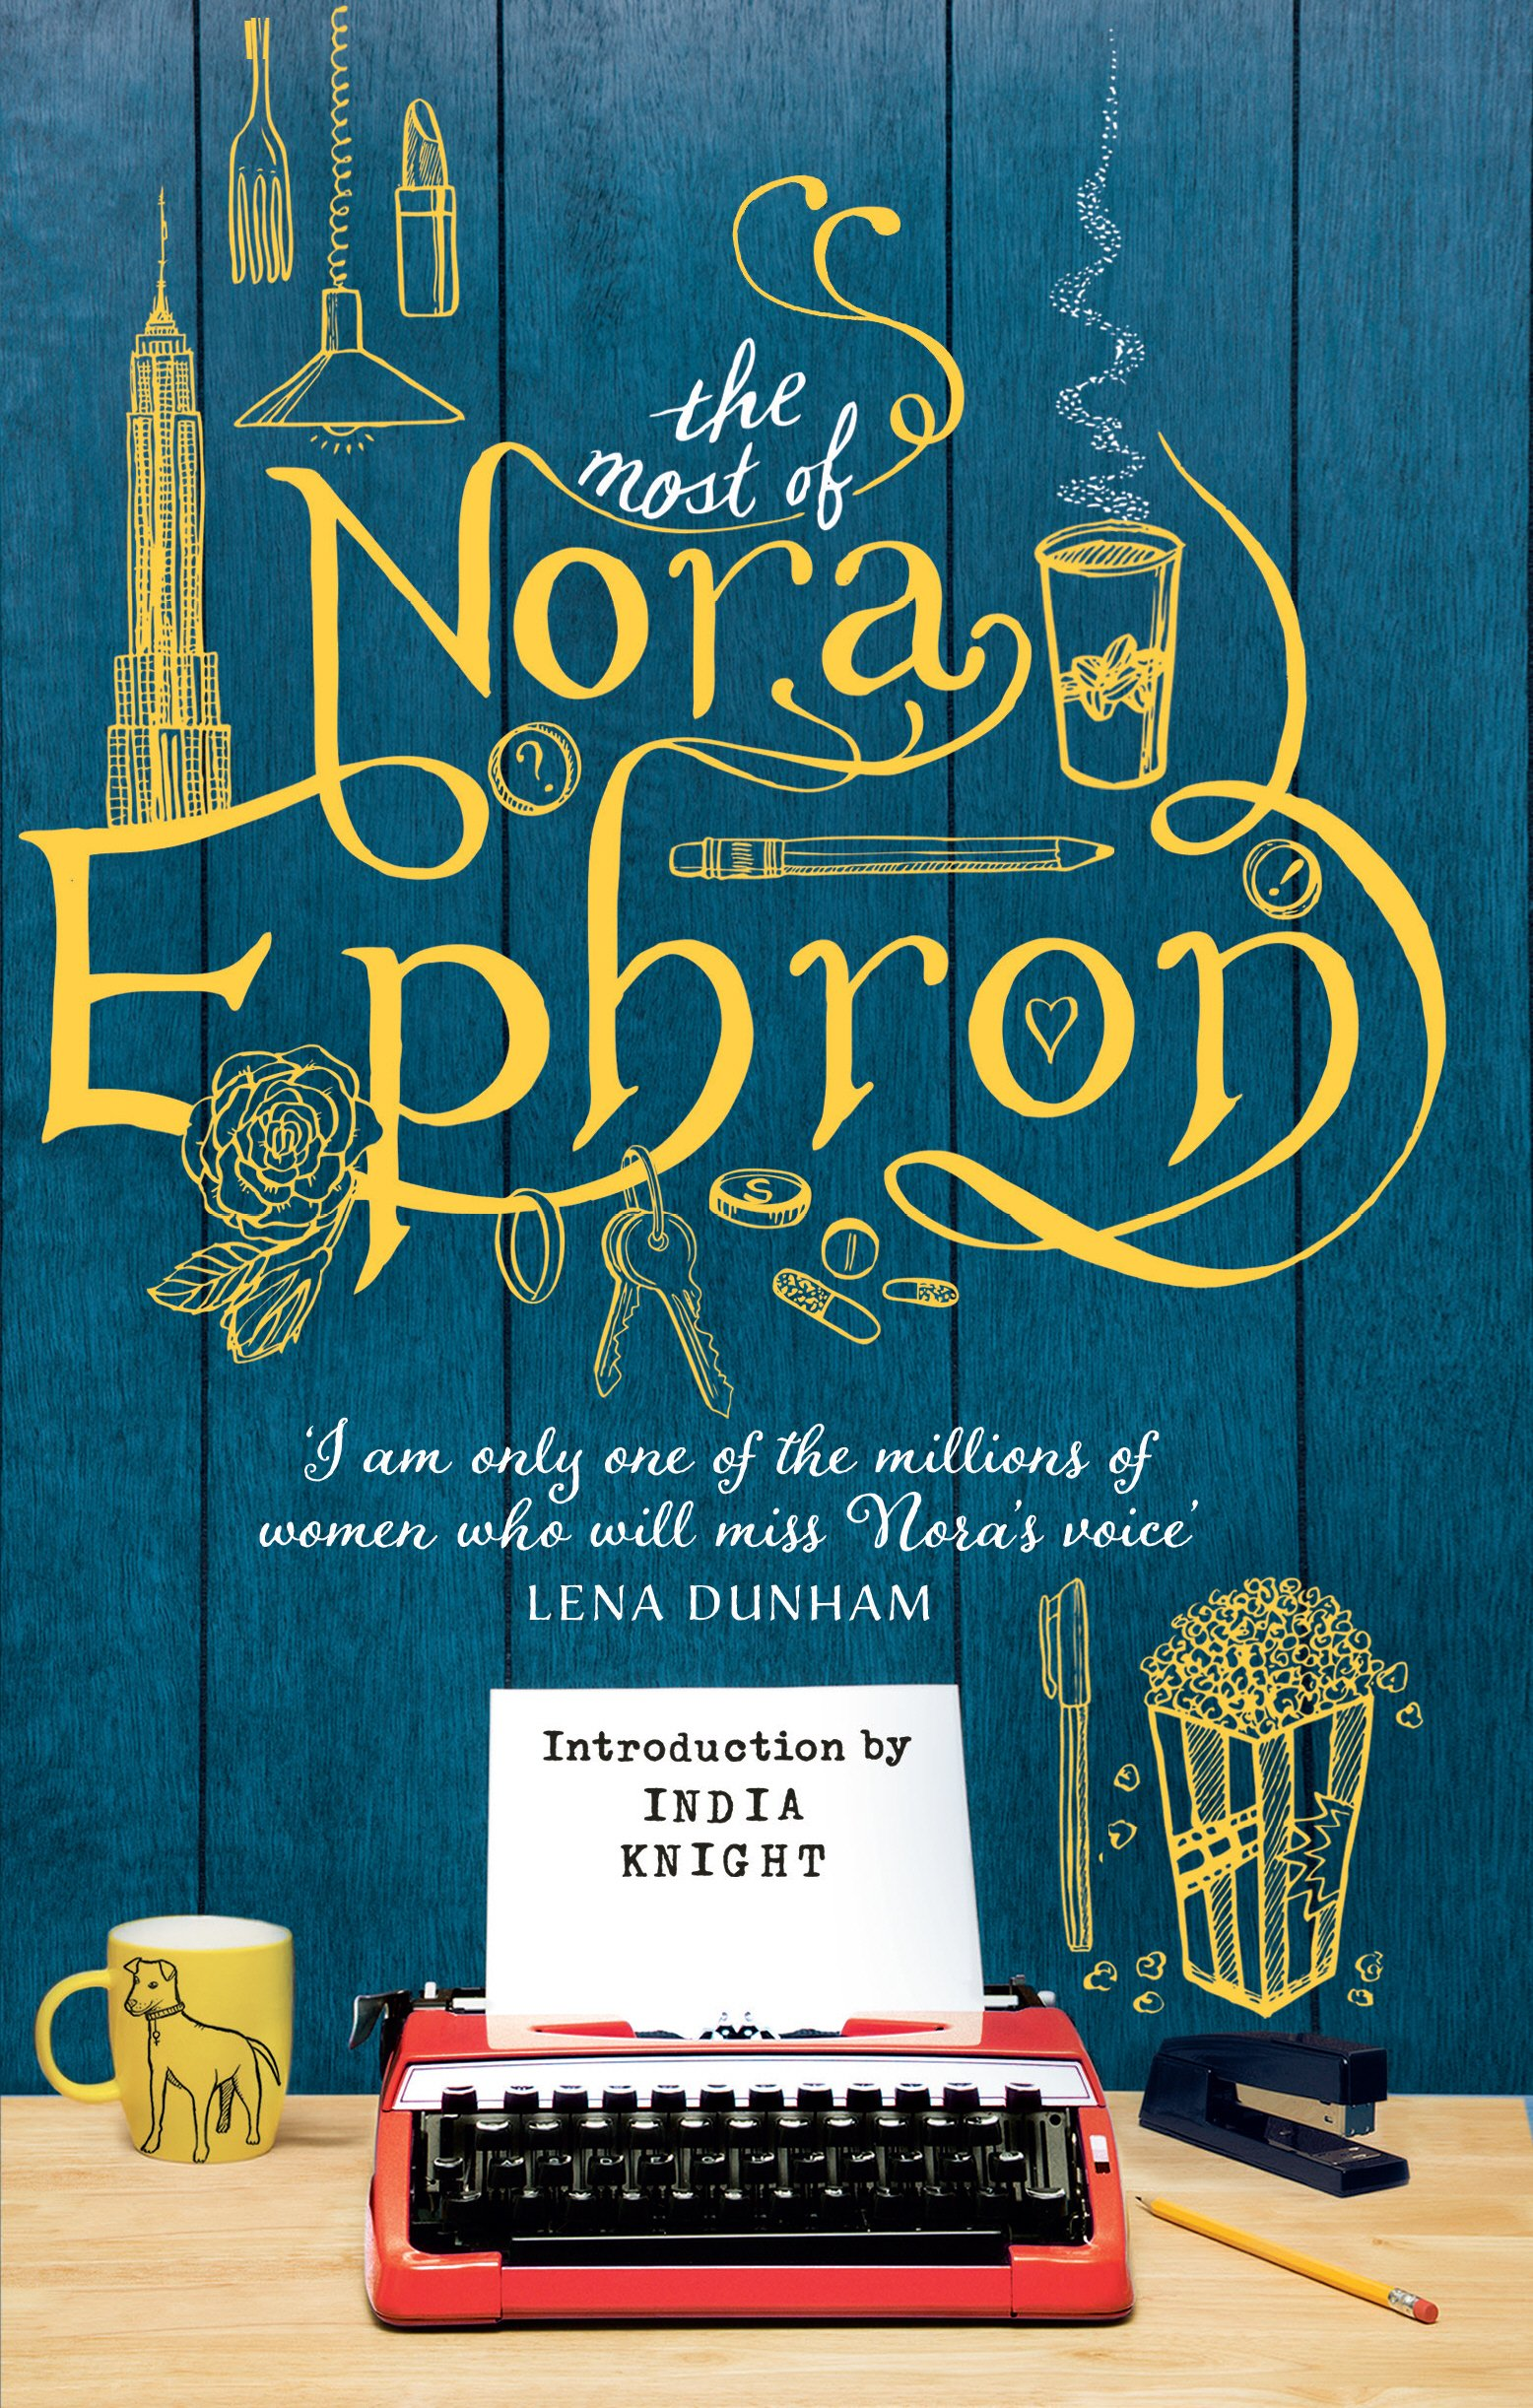 the most of nora ephron co uk nora ephron knight the most of nora ephron co uk nora ephron knight 9781784160098 books